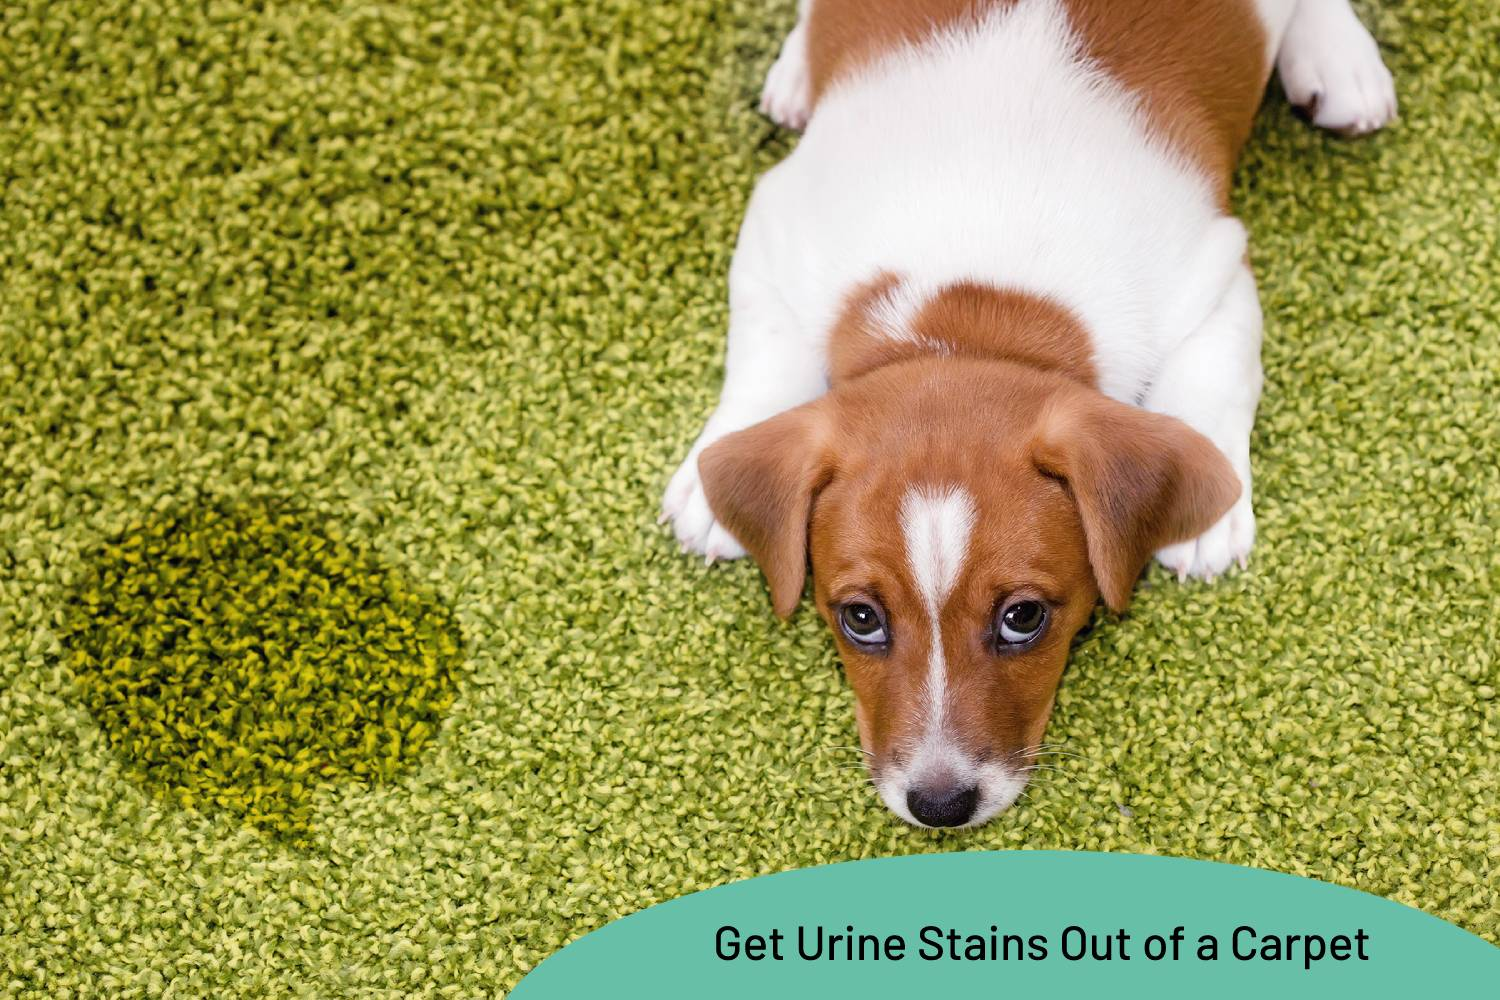 How To Get Urine Stains Out Of A Carpet   My Fair Cleaning